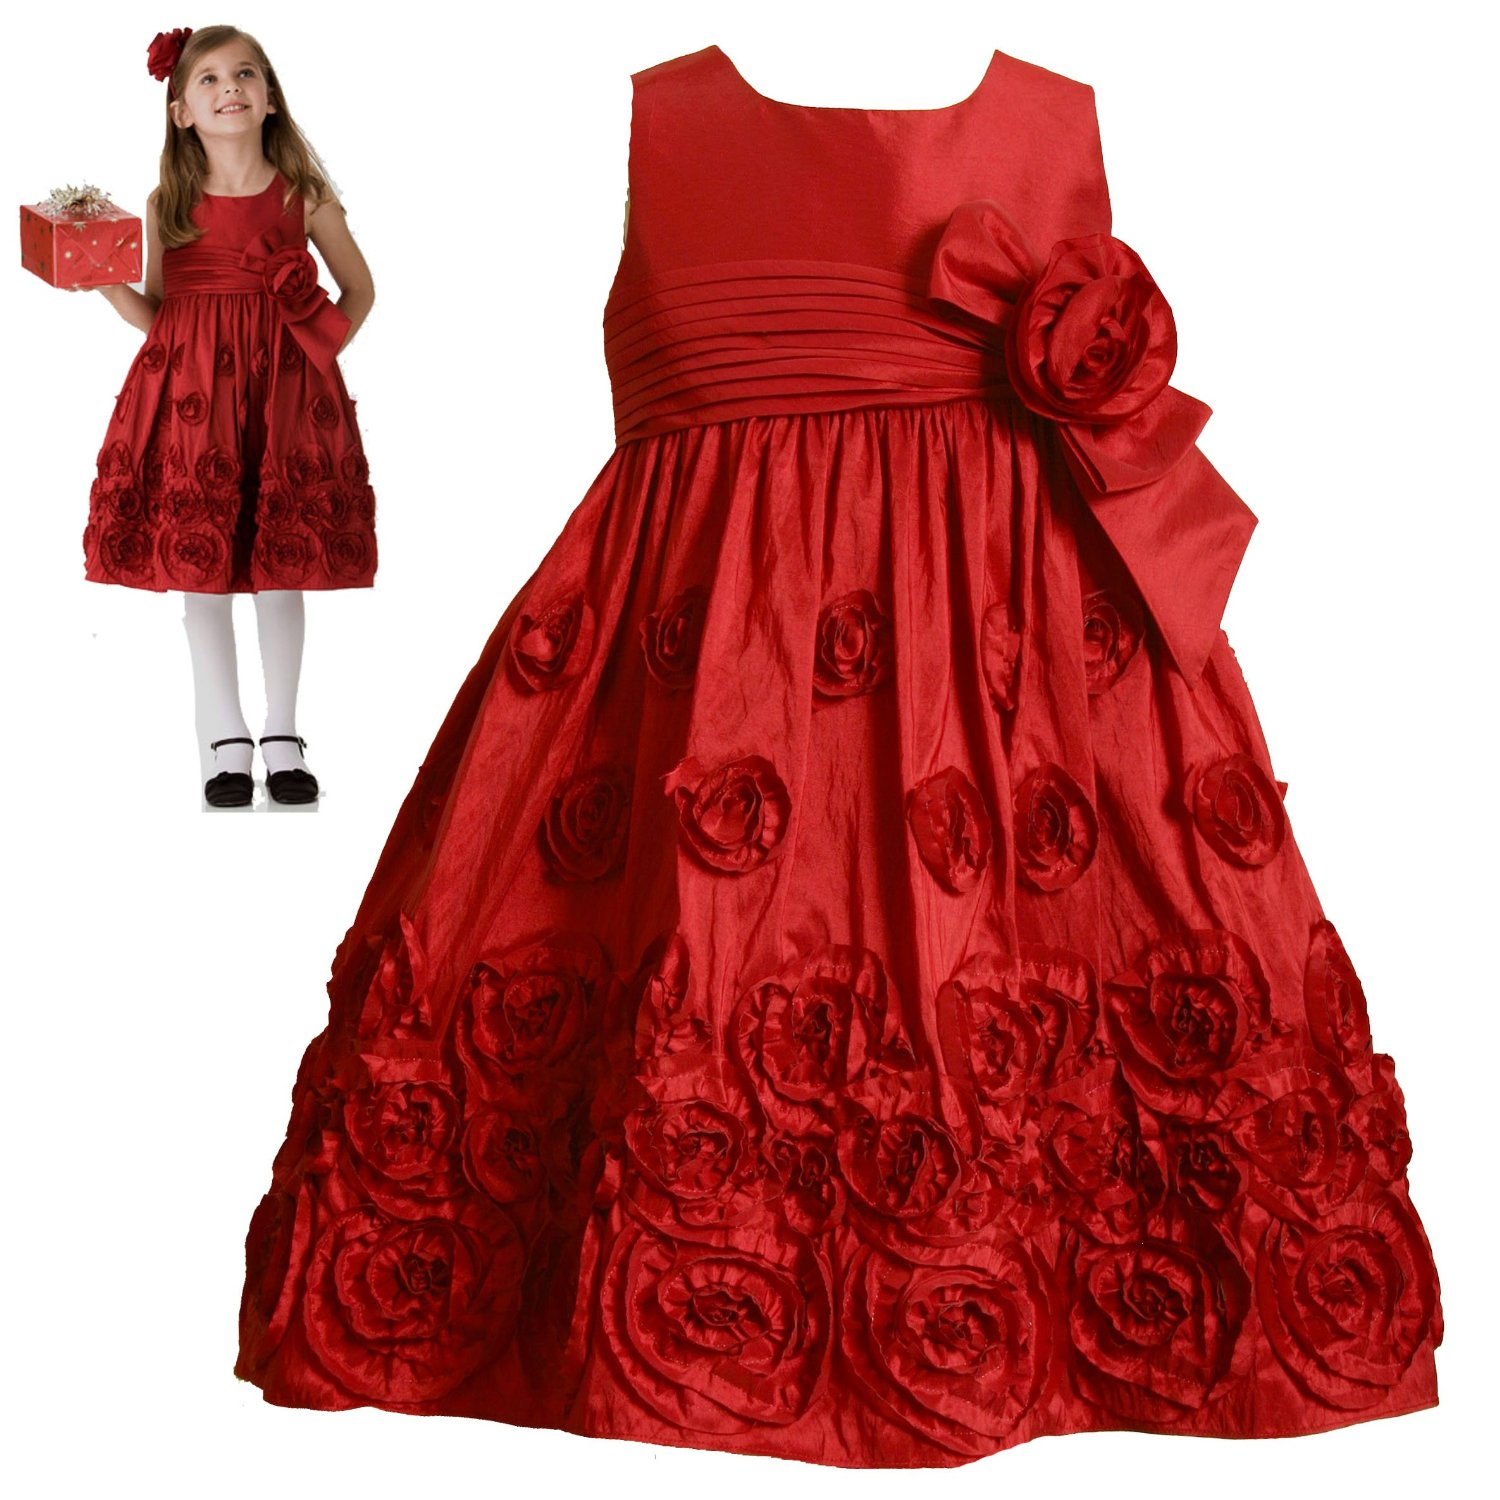 Incredible Girls Christmas Dresses 1500 x 1500 · 276 kB · jpeg